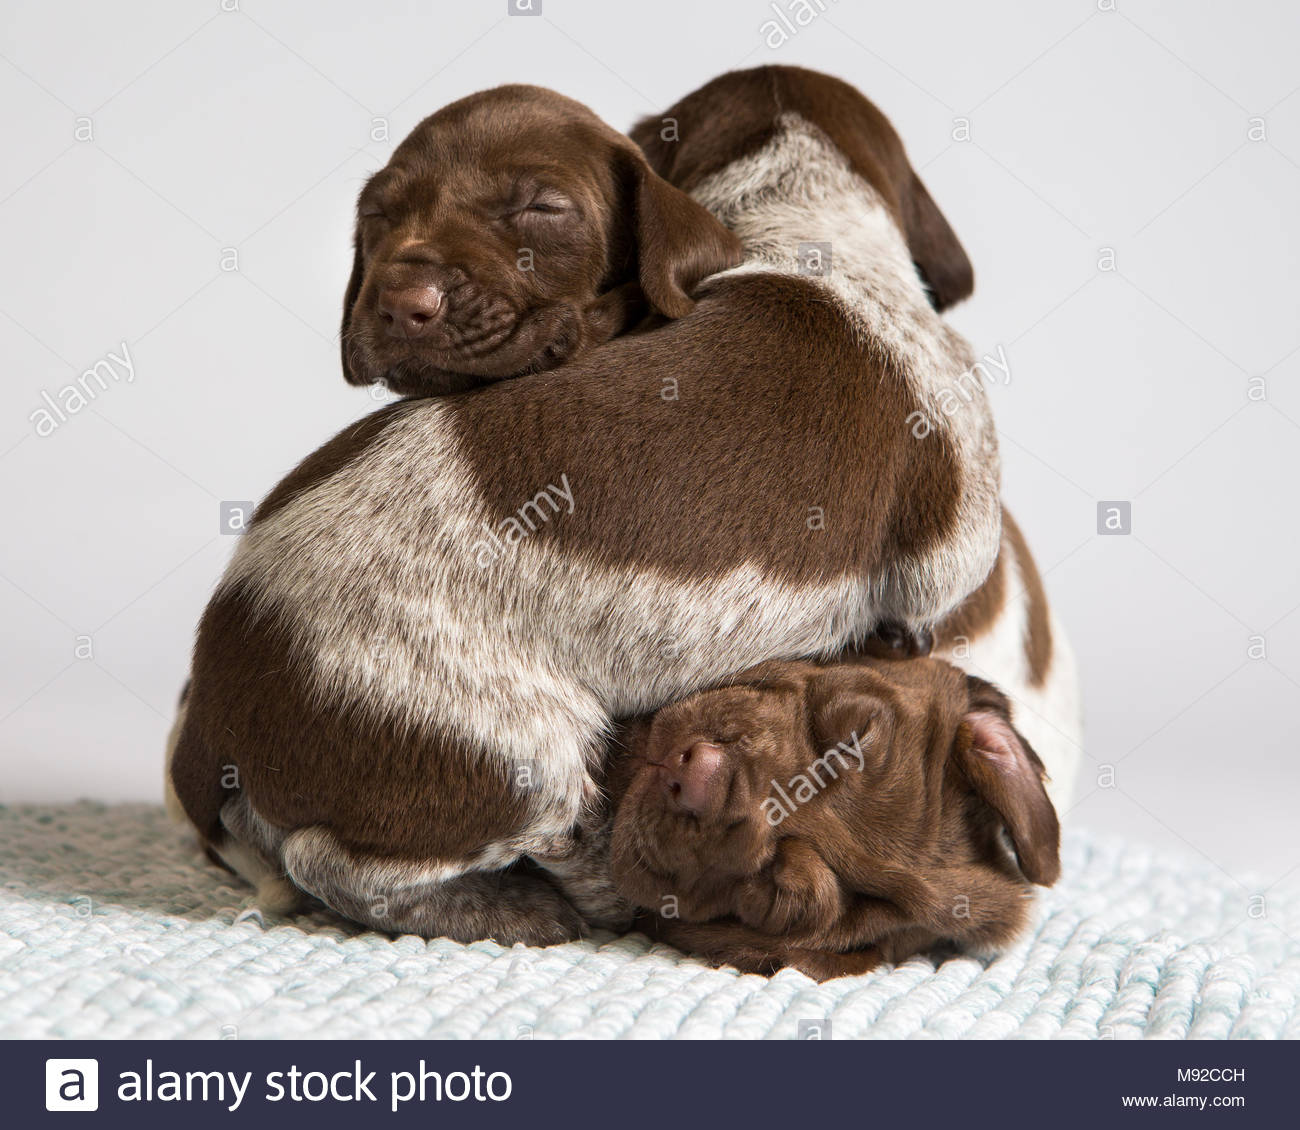 Brown and white german shorthaired pointer puppies sleeping in a pile against a white studio background - Stock Image